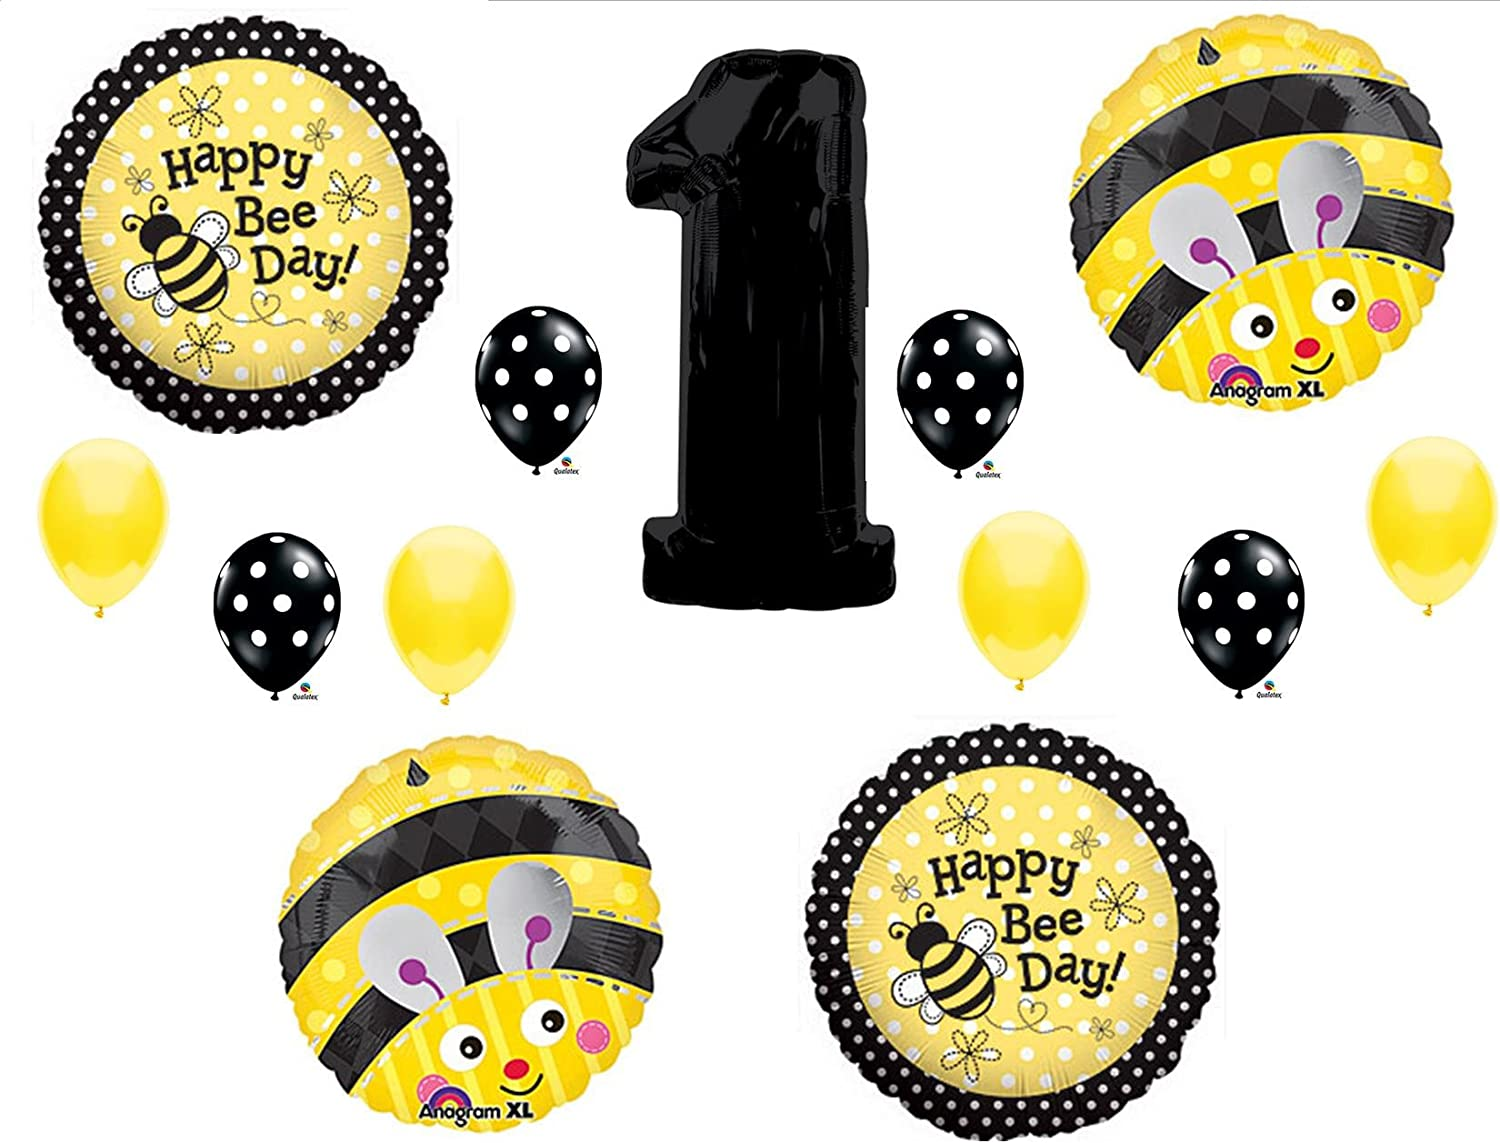 Sweet as can Bee Happy Bee-Day Party Bumblebee Bee Happy 11\u201d Latex Balloons Set of 6